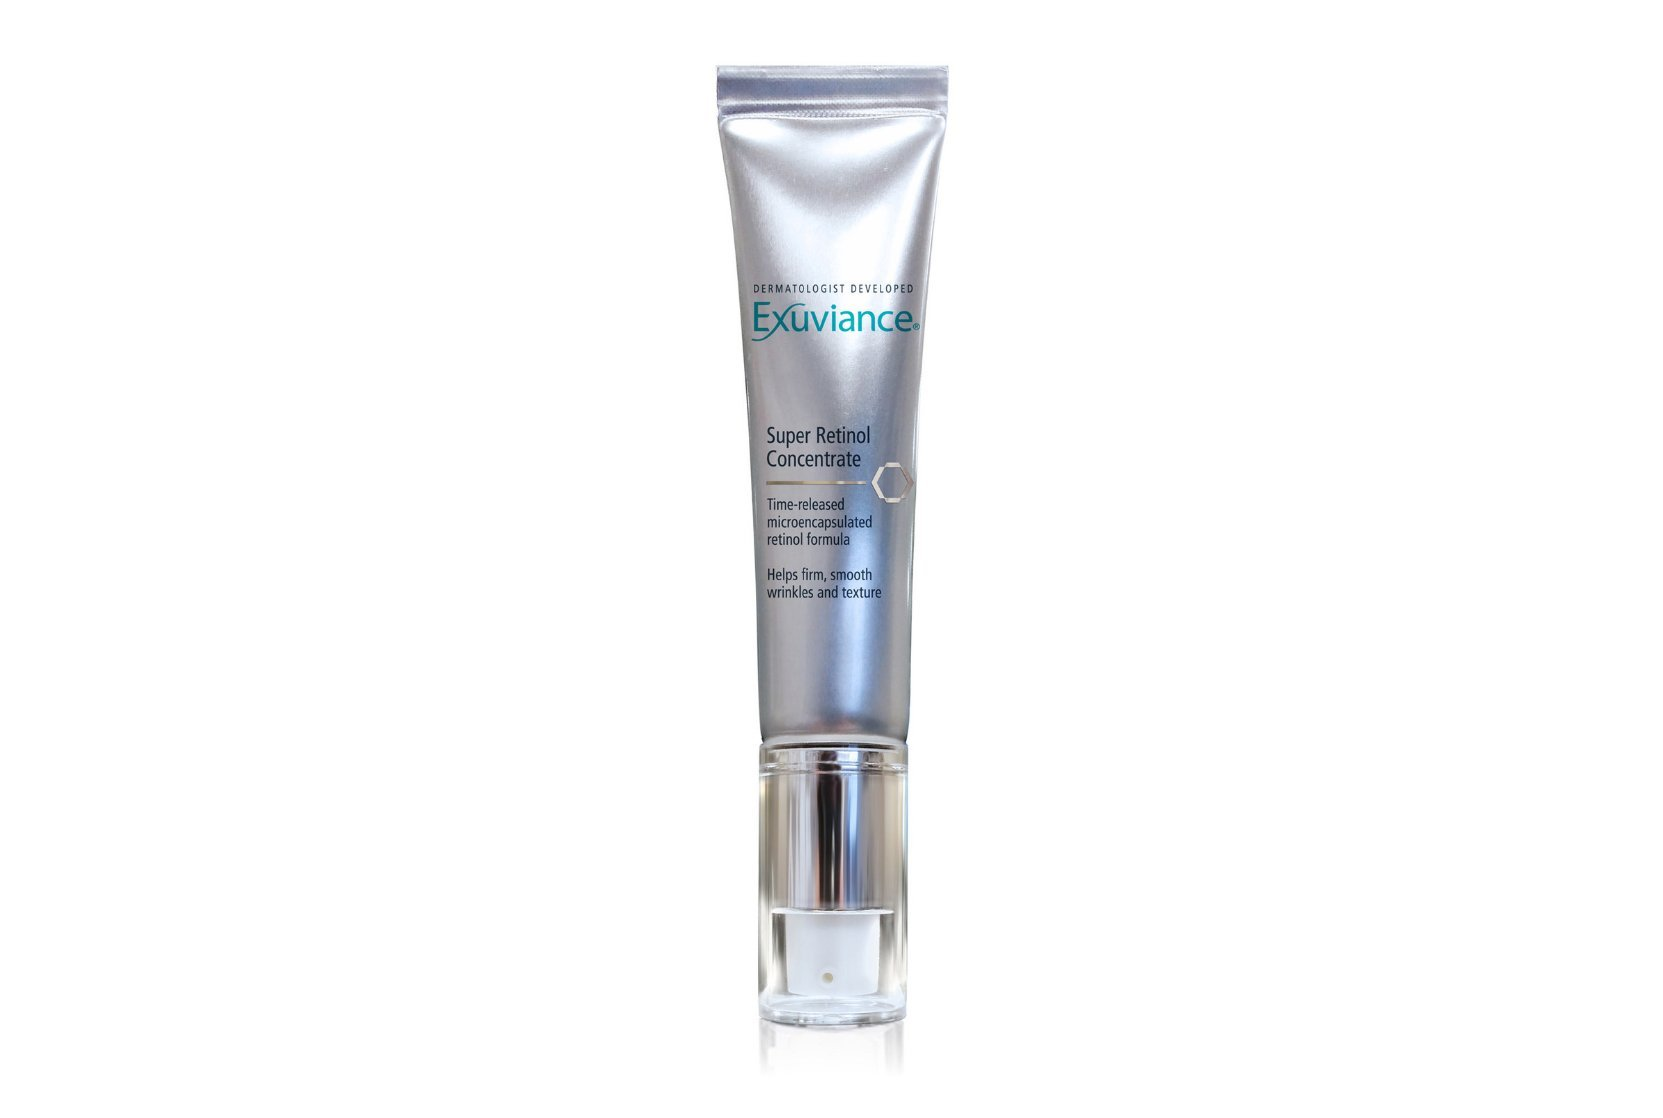 Exuviance Super Retinol Concentrate, 1 Fluid Ounce